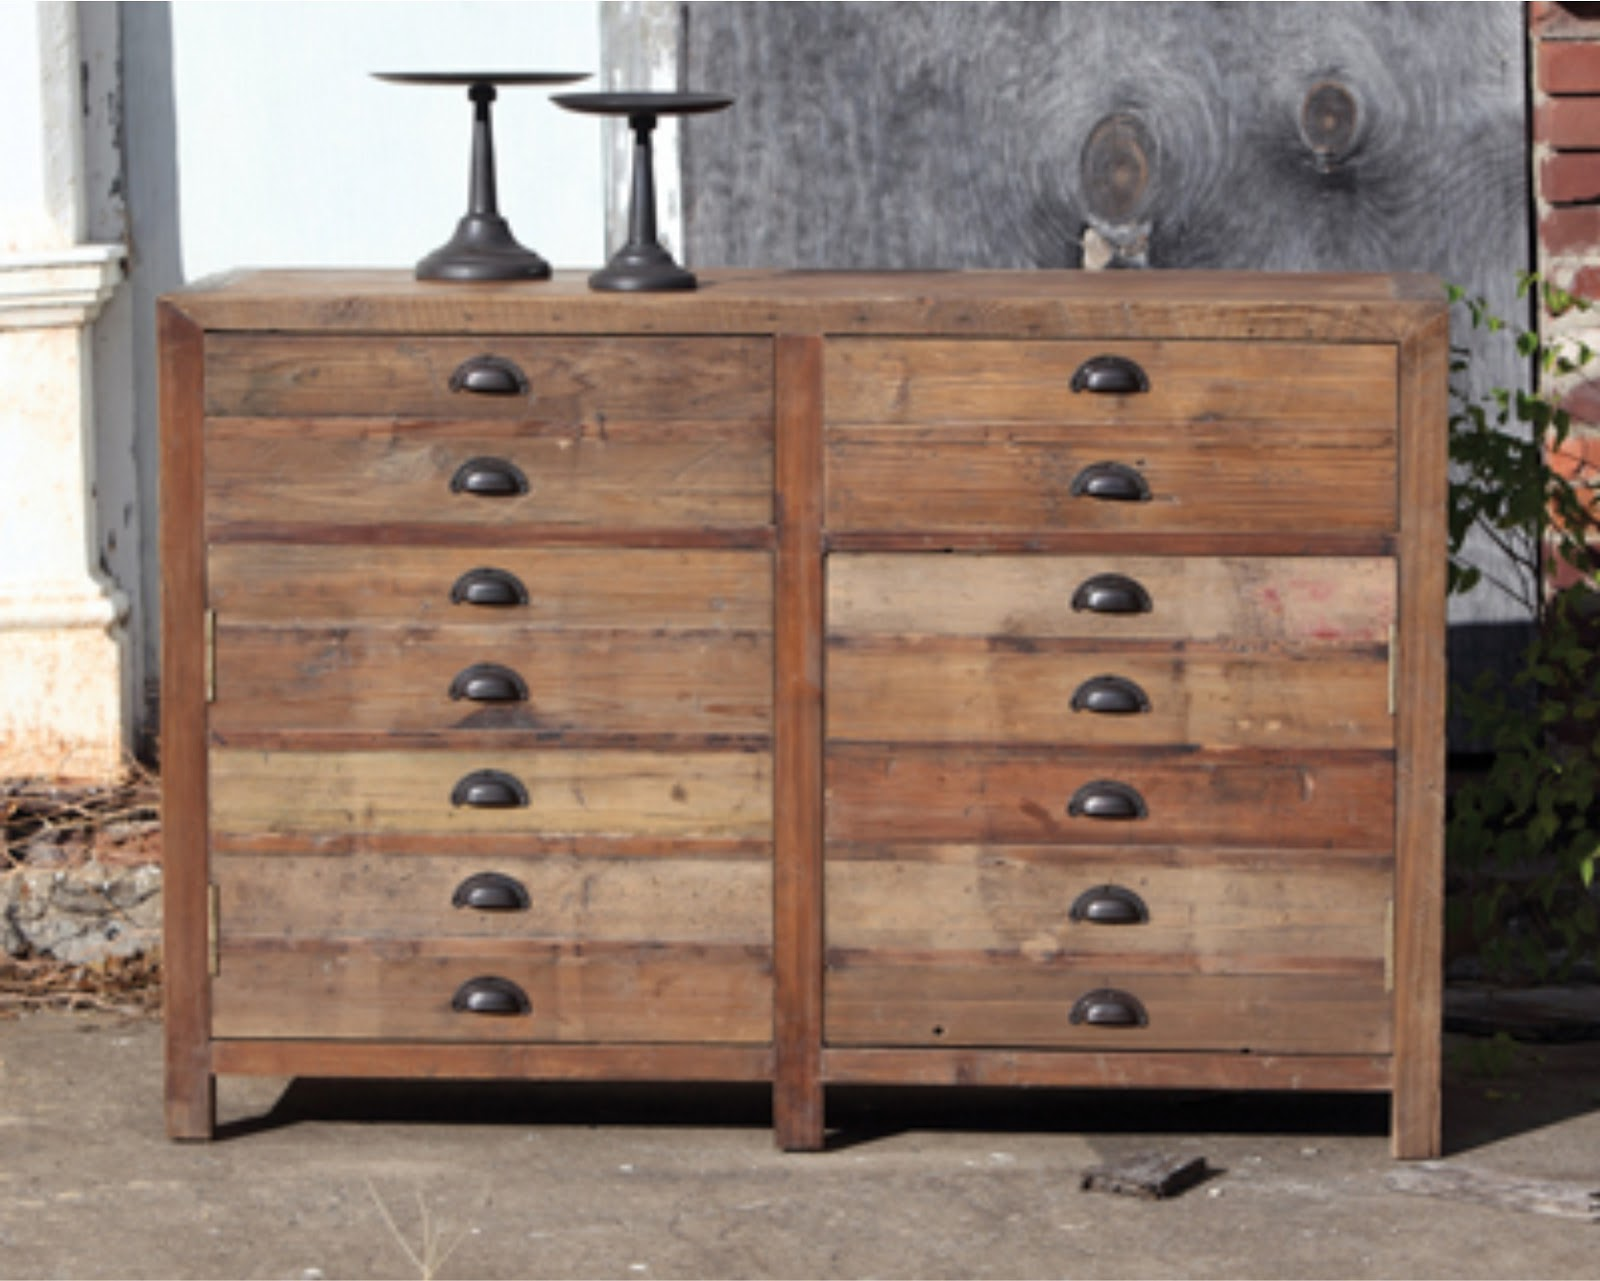 Reclaimed Wood Cabinets ~ J thaddeus ozark s cookie jars and other larks cabinets